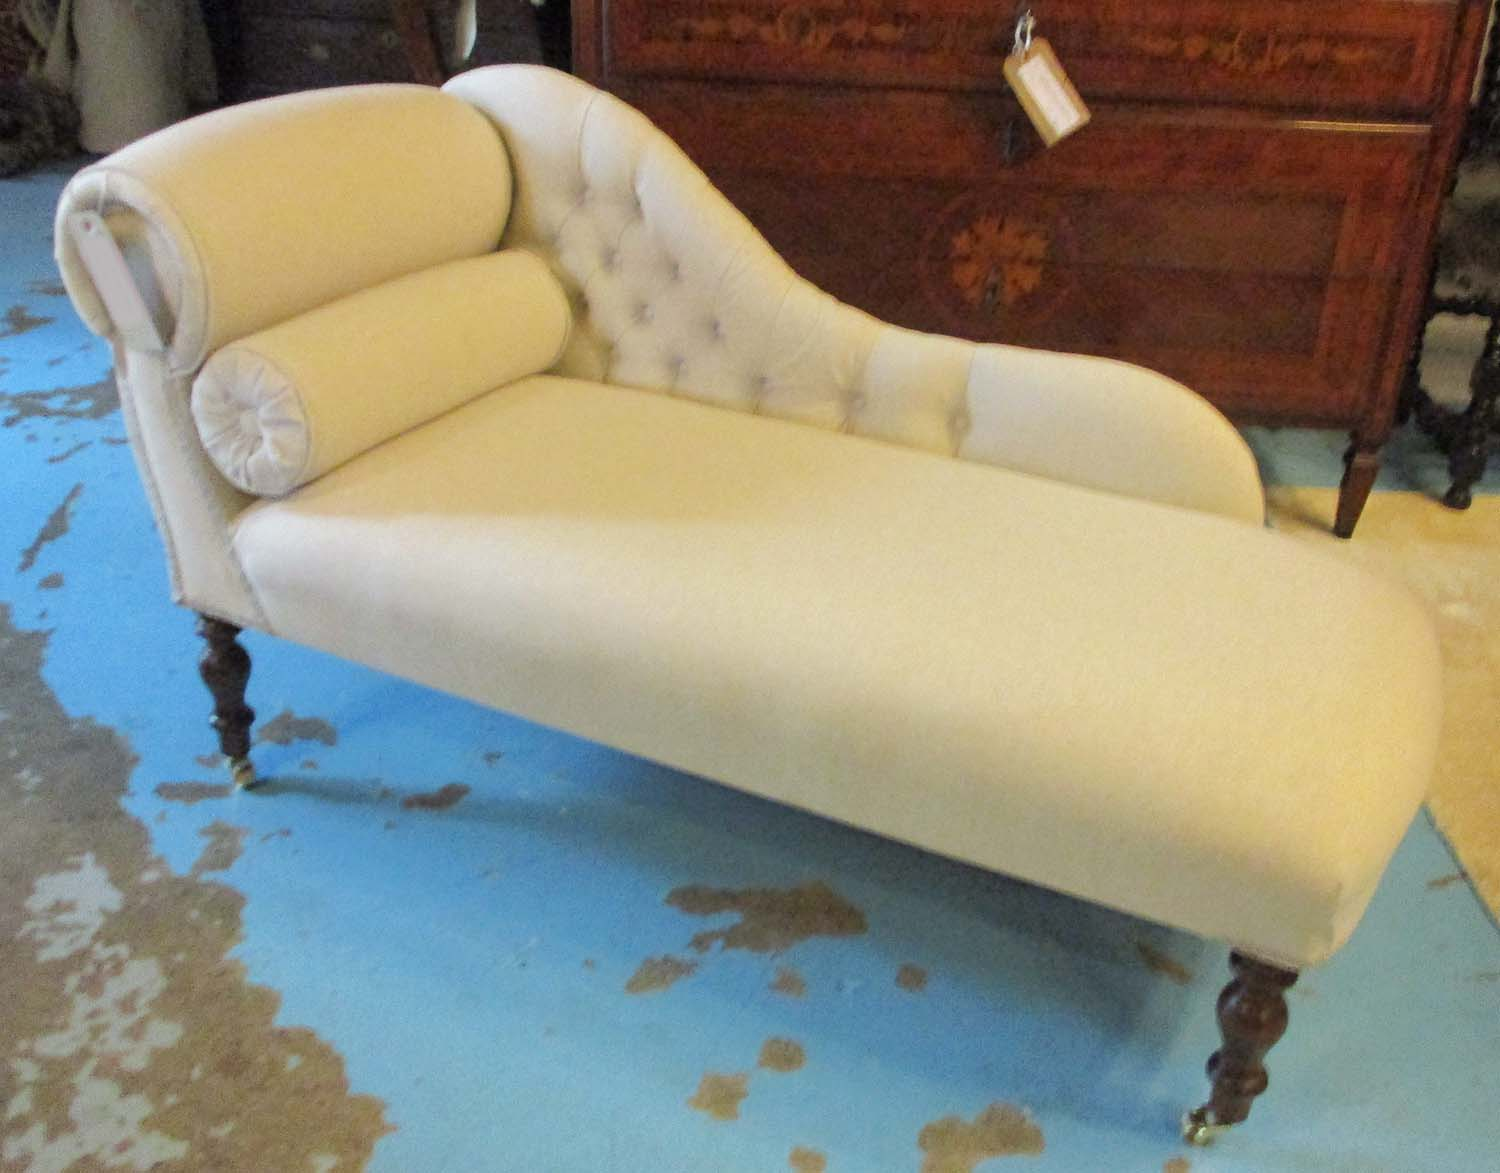 Window seat in the form of a miniature chaise longue with for Chaise longue window seat